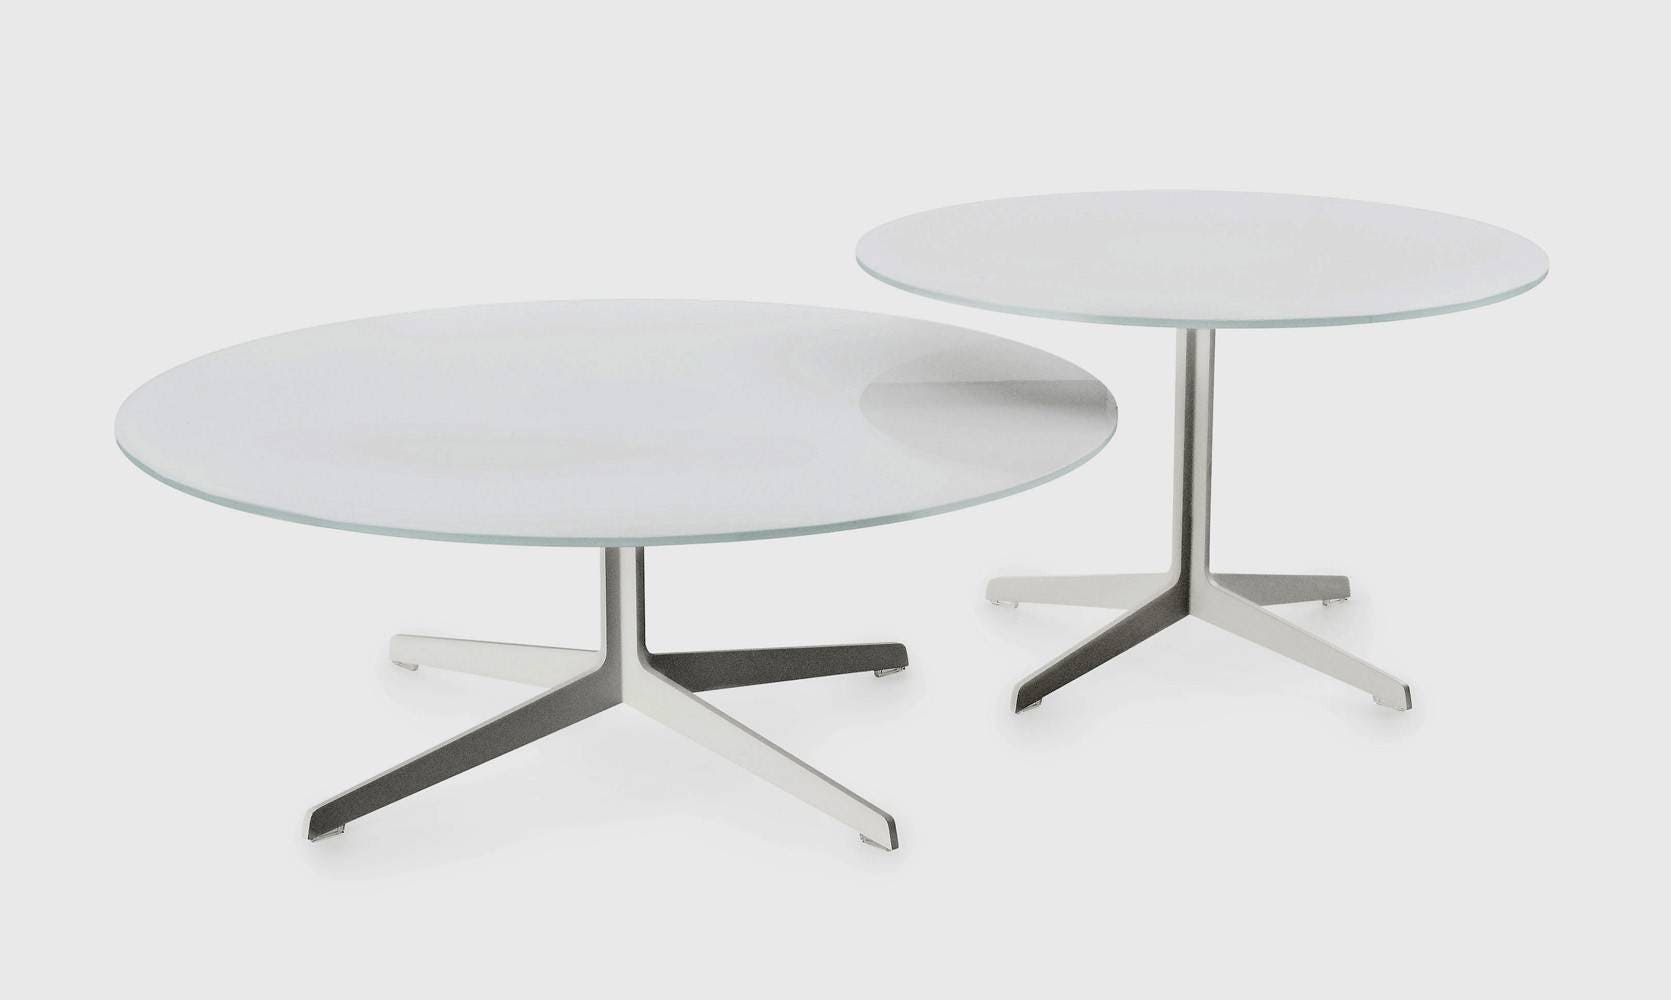 Fritz hansen space coffee table gr shop canada for Html table spacing